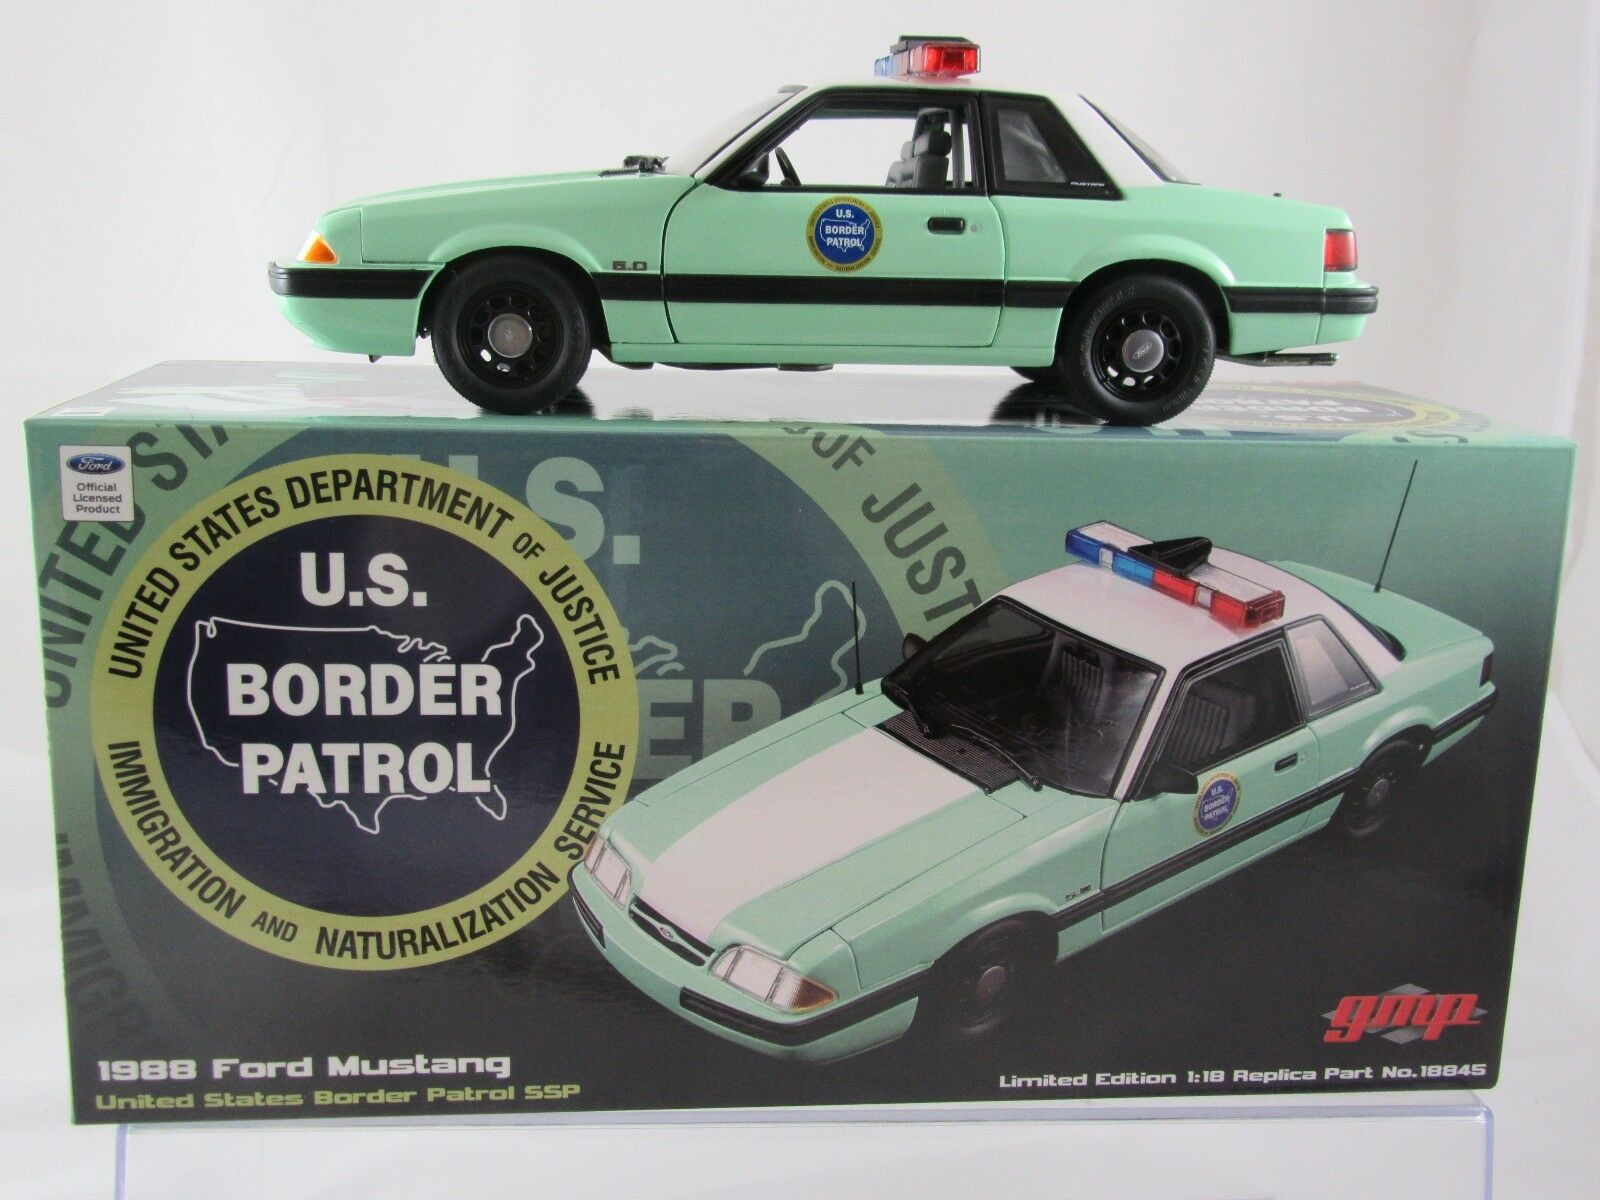 Gmp 1988 ford mustang grenzpatrouille mustang ssp g18845